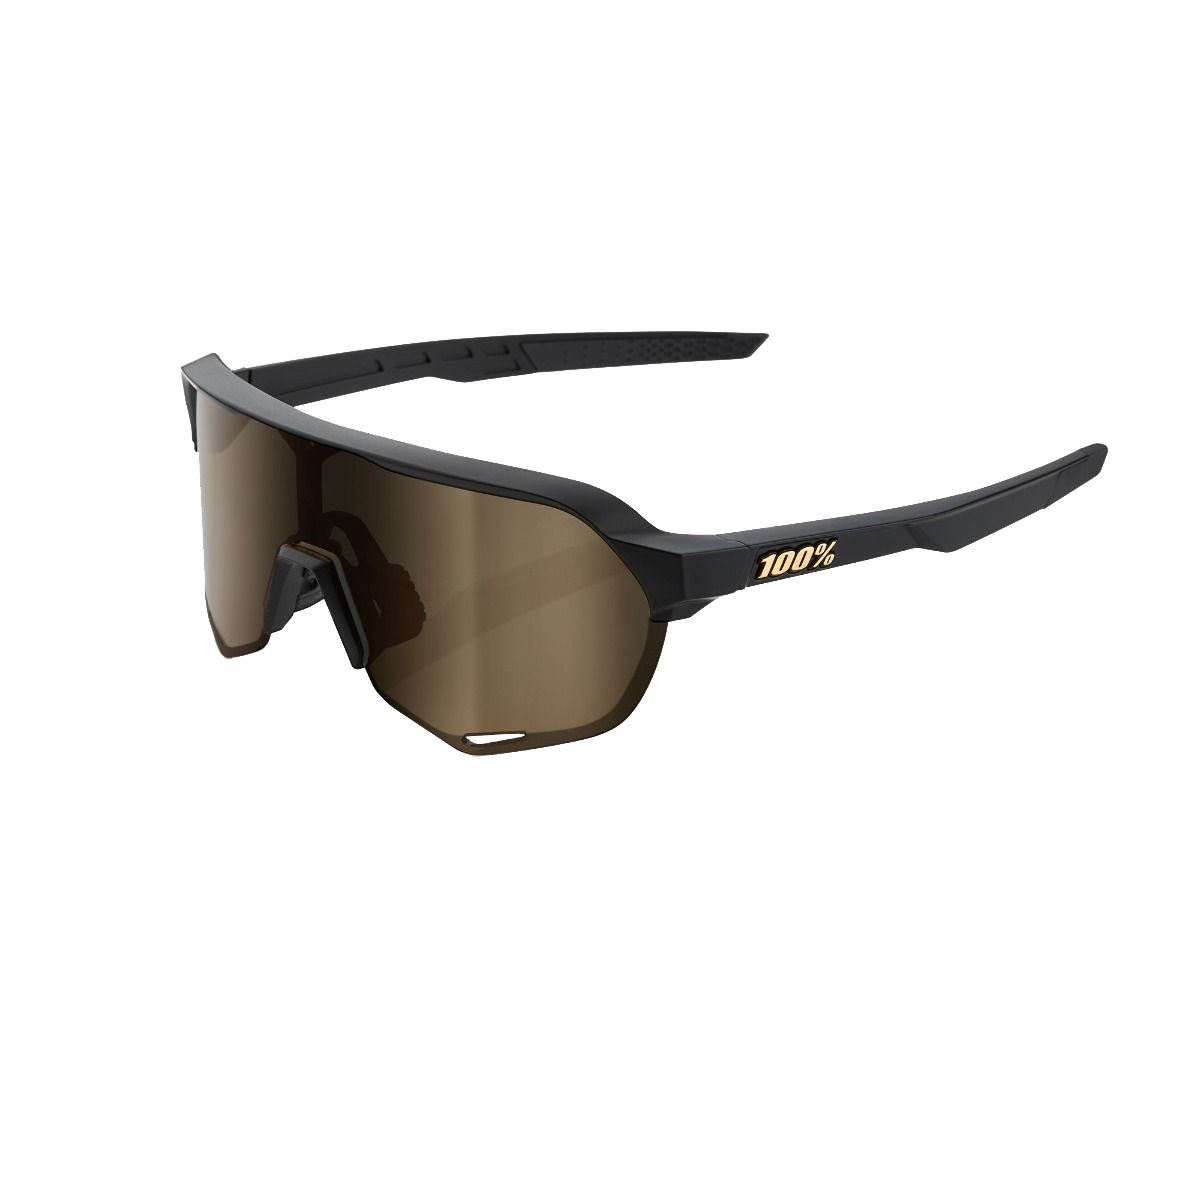 100 S2 Sunglasses Matte Black Flash Gold Lens Modern Bike